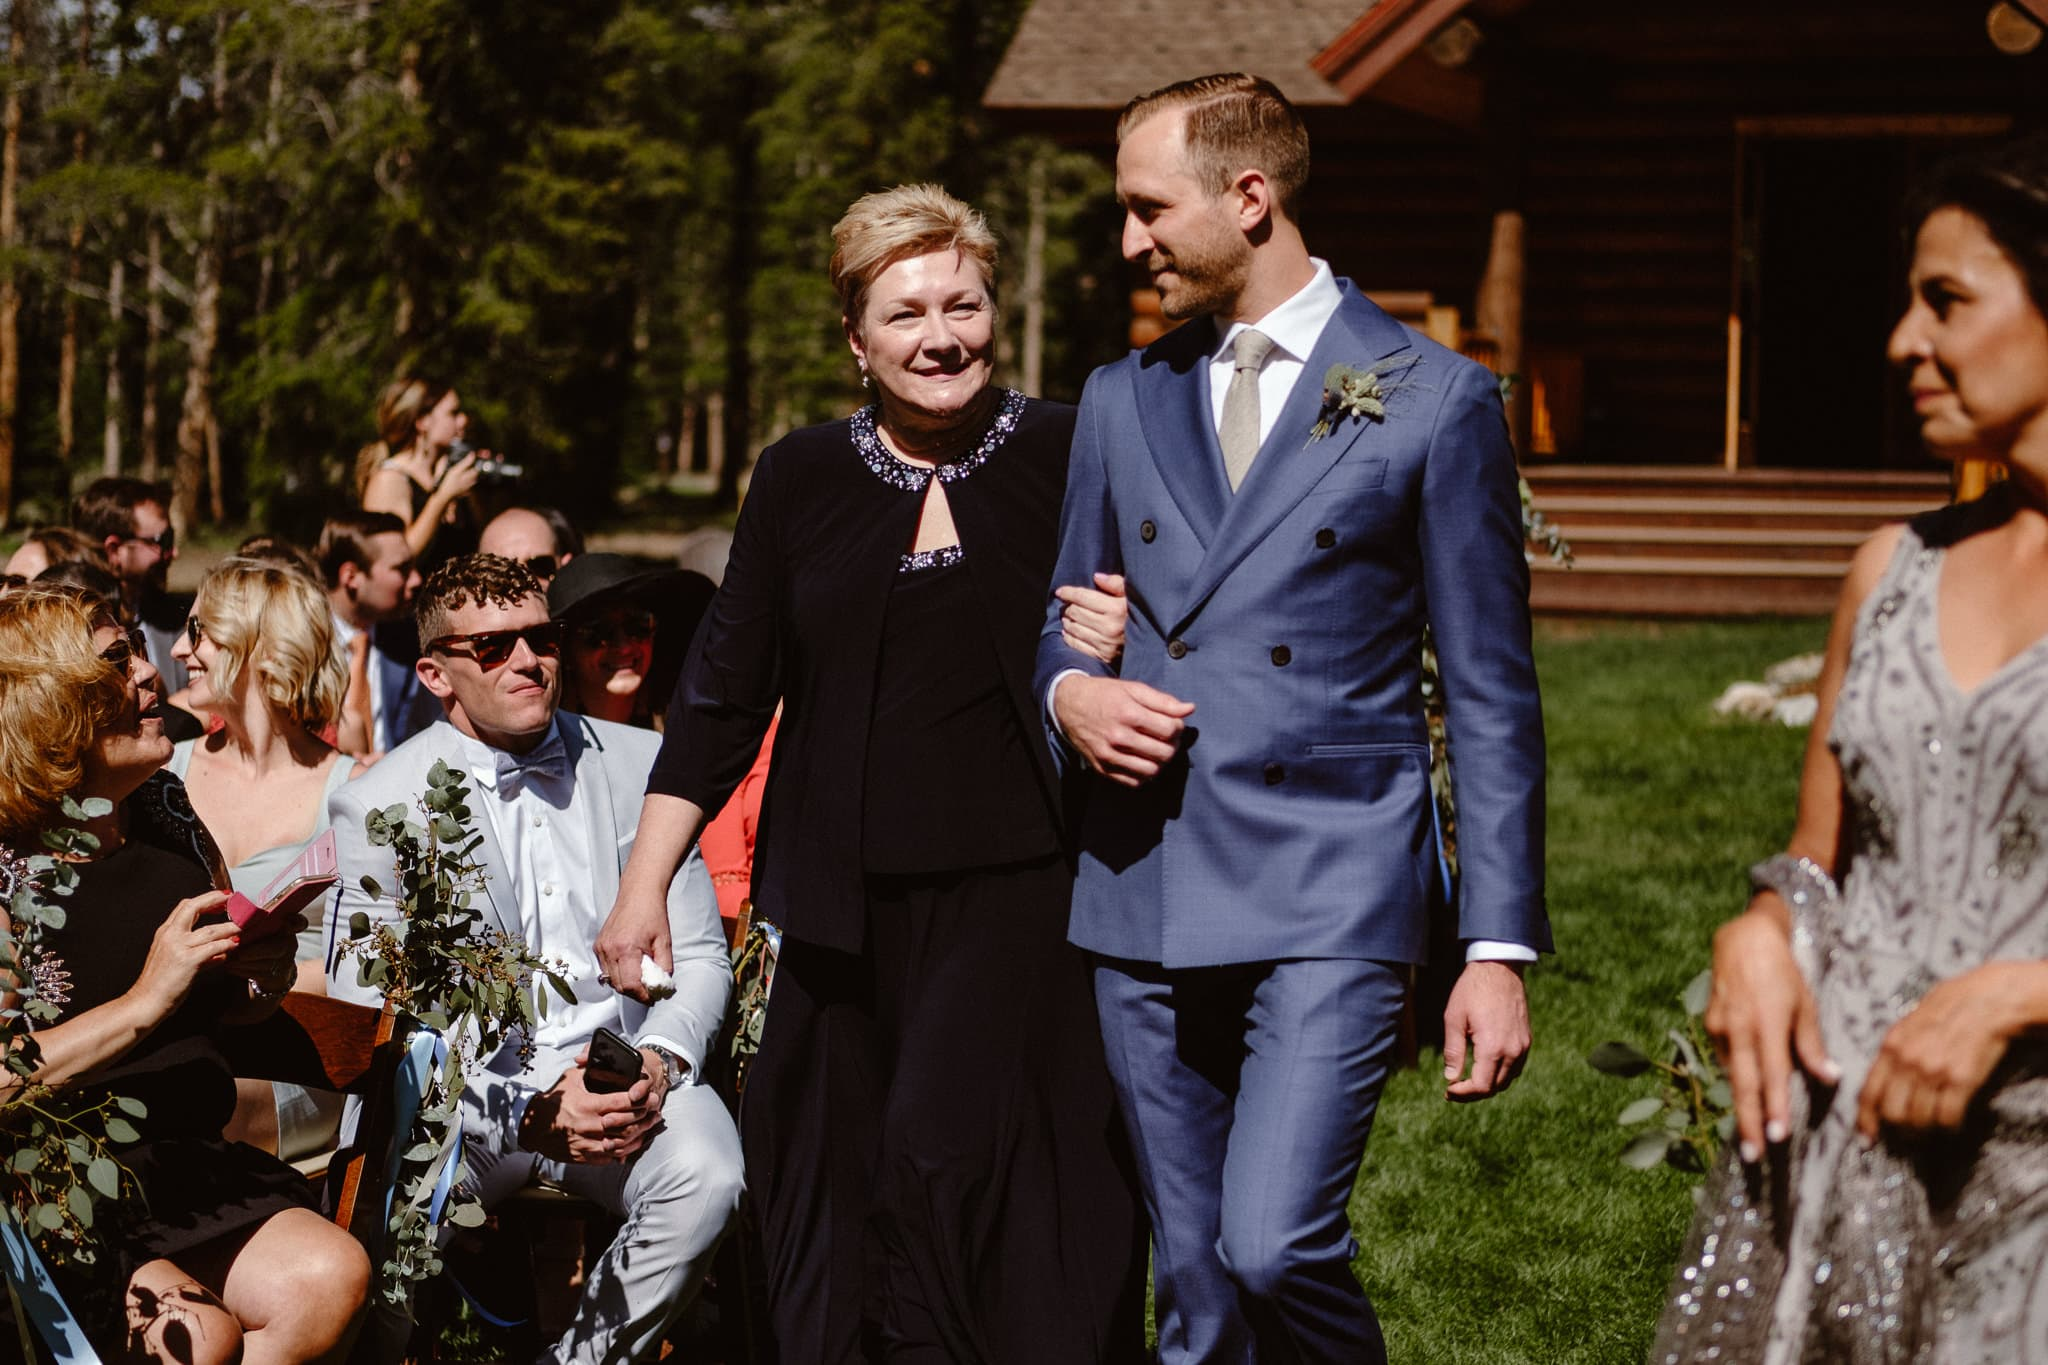 Groom walking down the aisle with his mother at Breckenridge Nordic Center wedding ceremony, Summit County wedding photographer